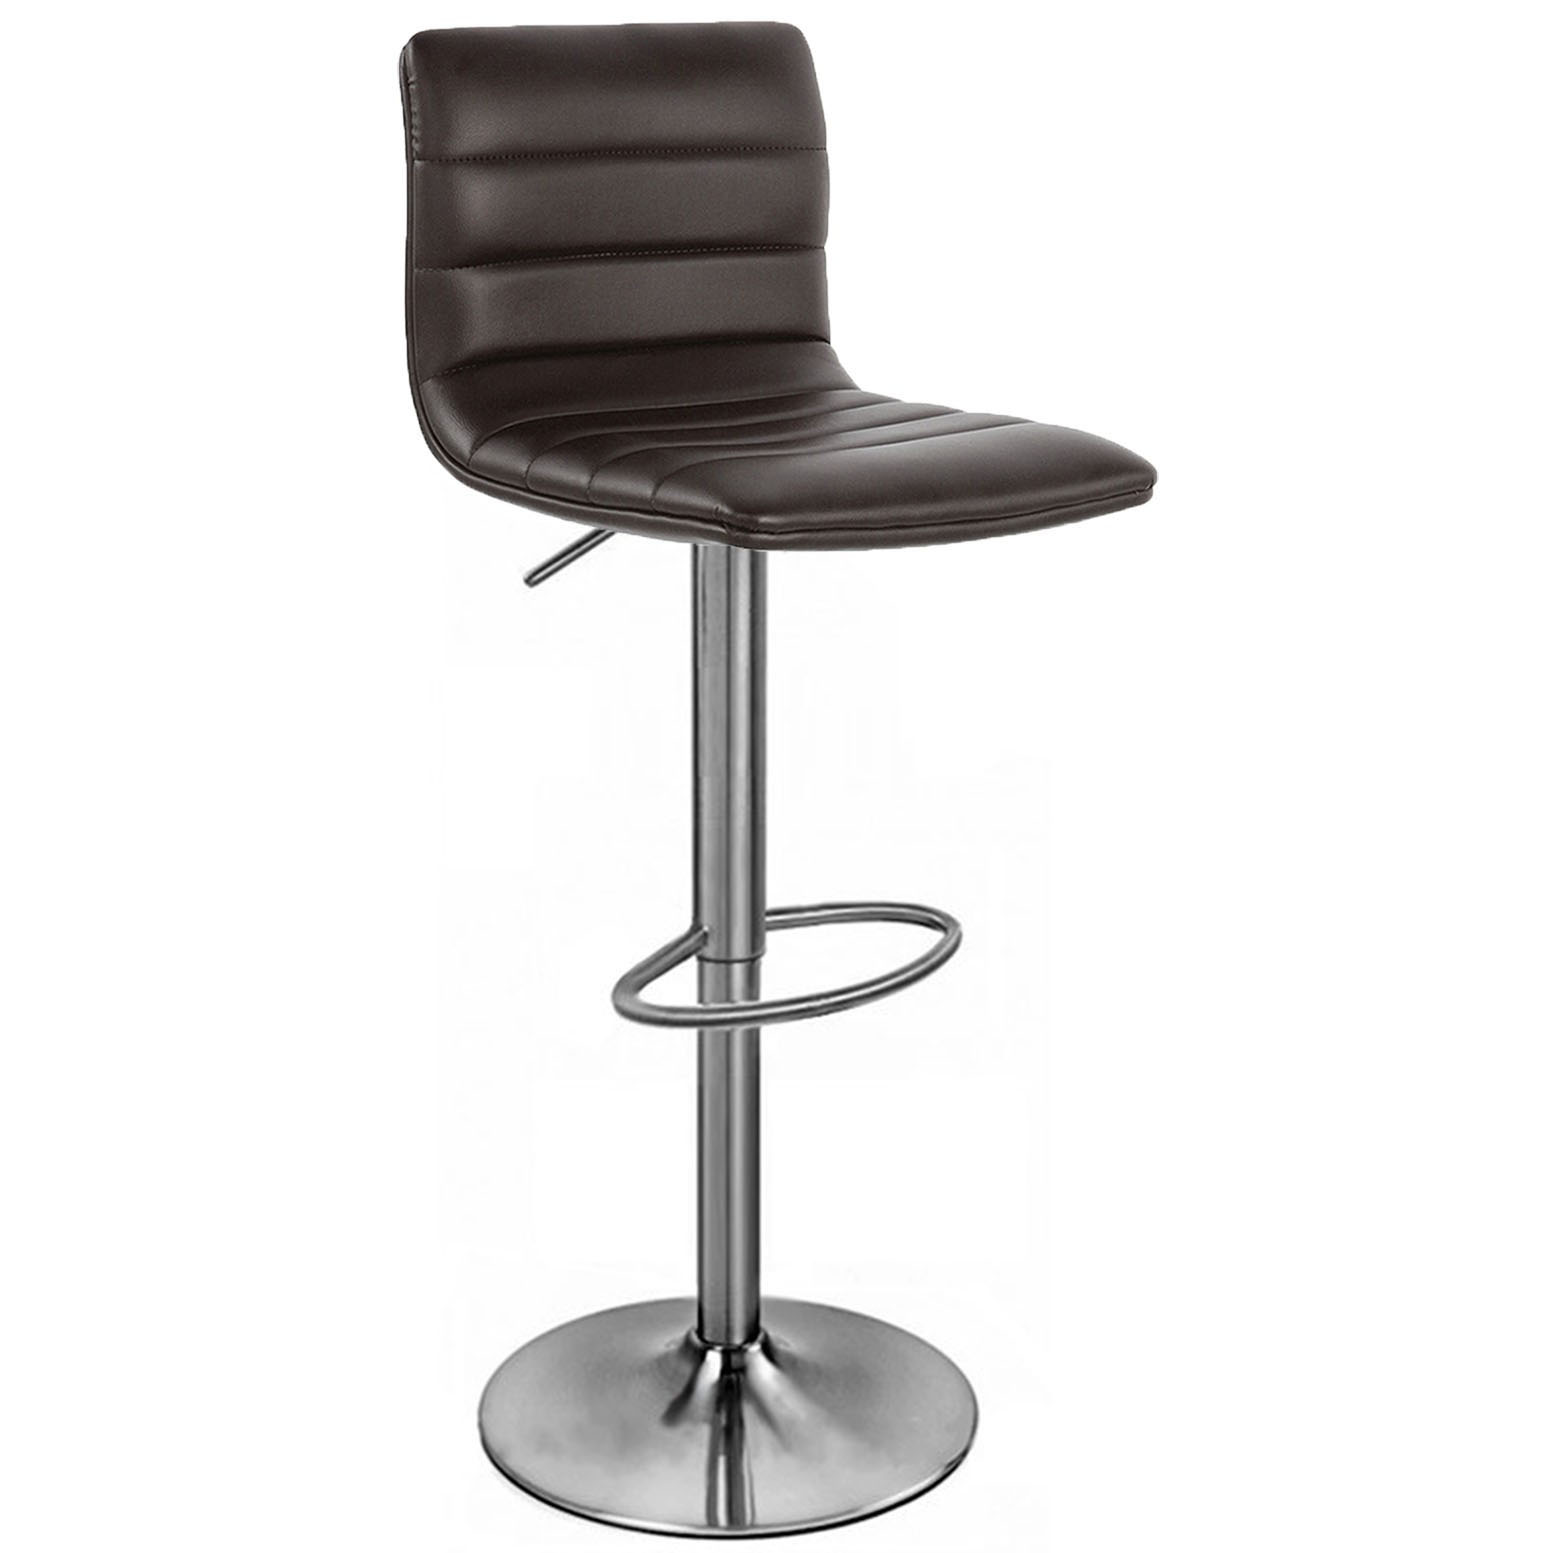 Aldo Brushed Bar Stool - Brown